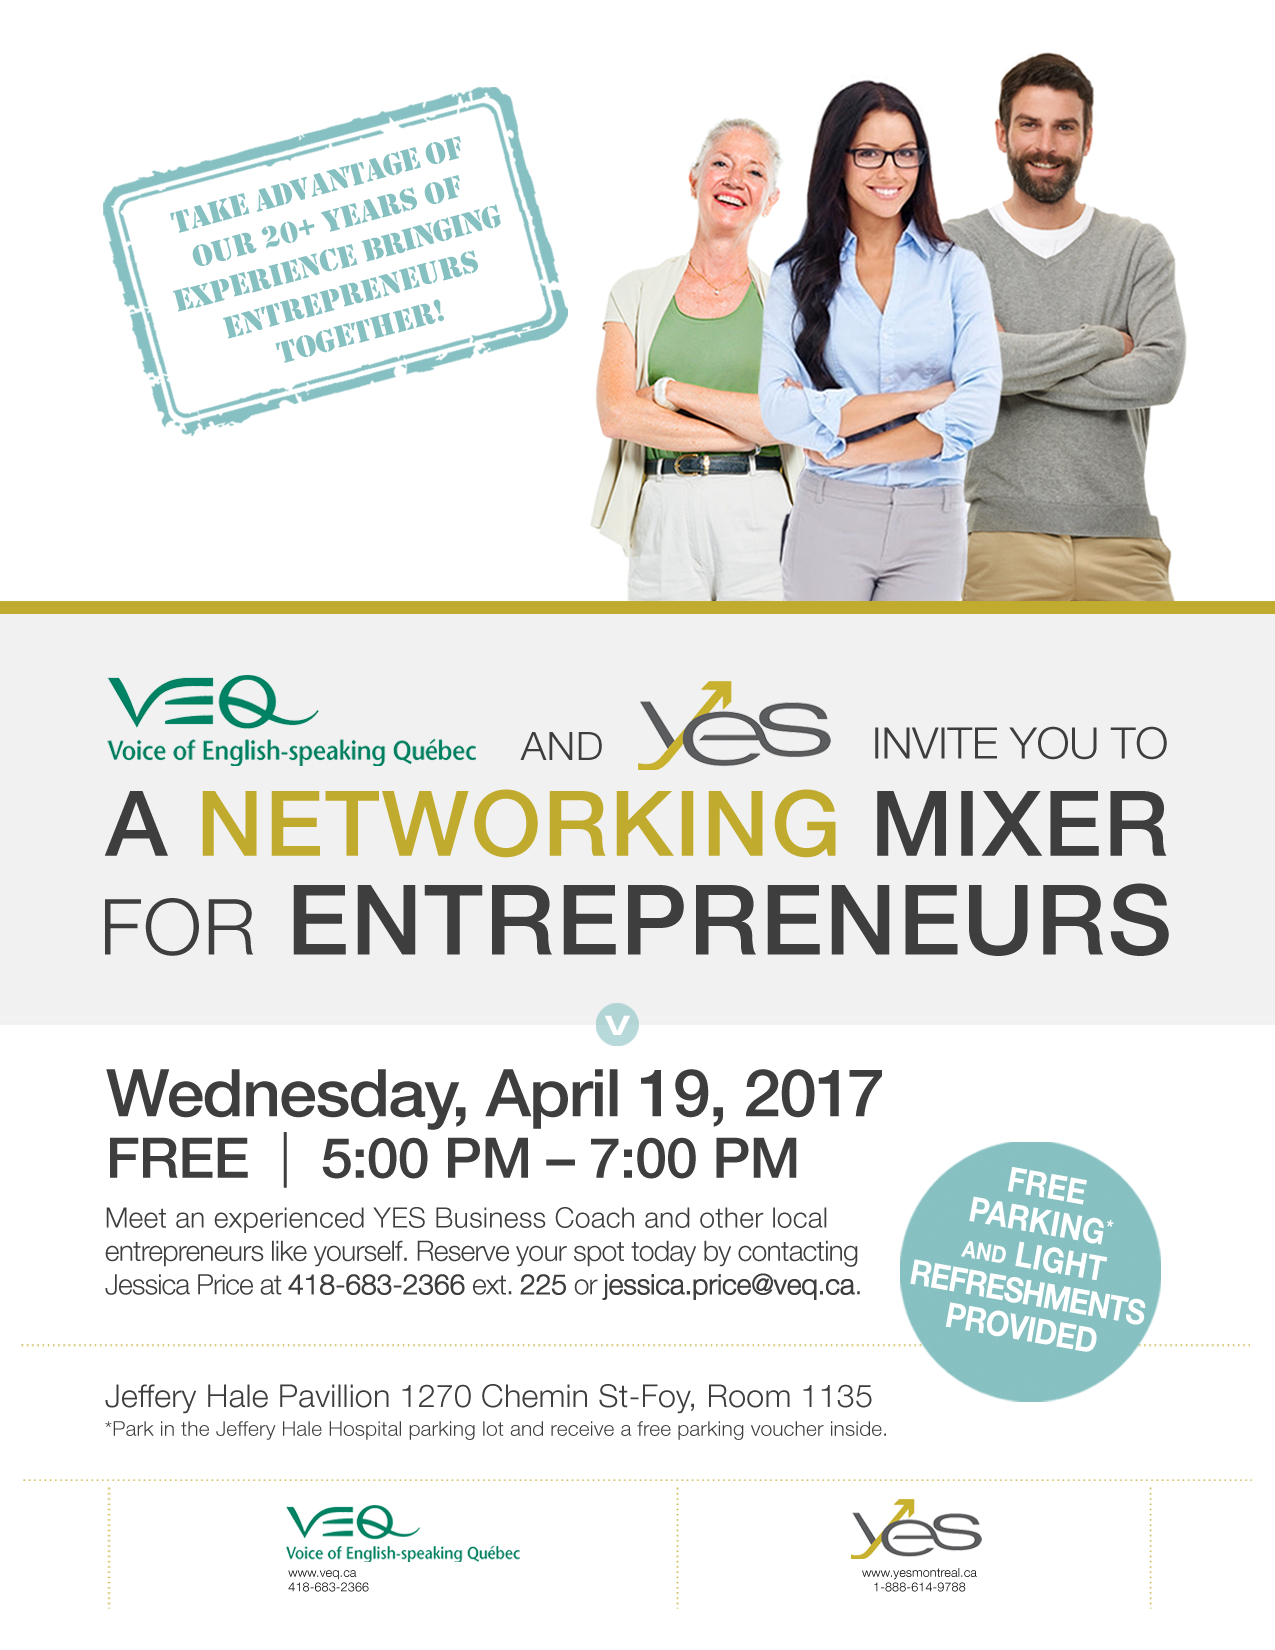 Youth Business Mixer ~ Networking mixer for entrepreneurs events veq